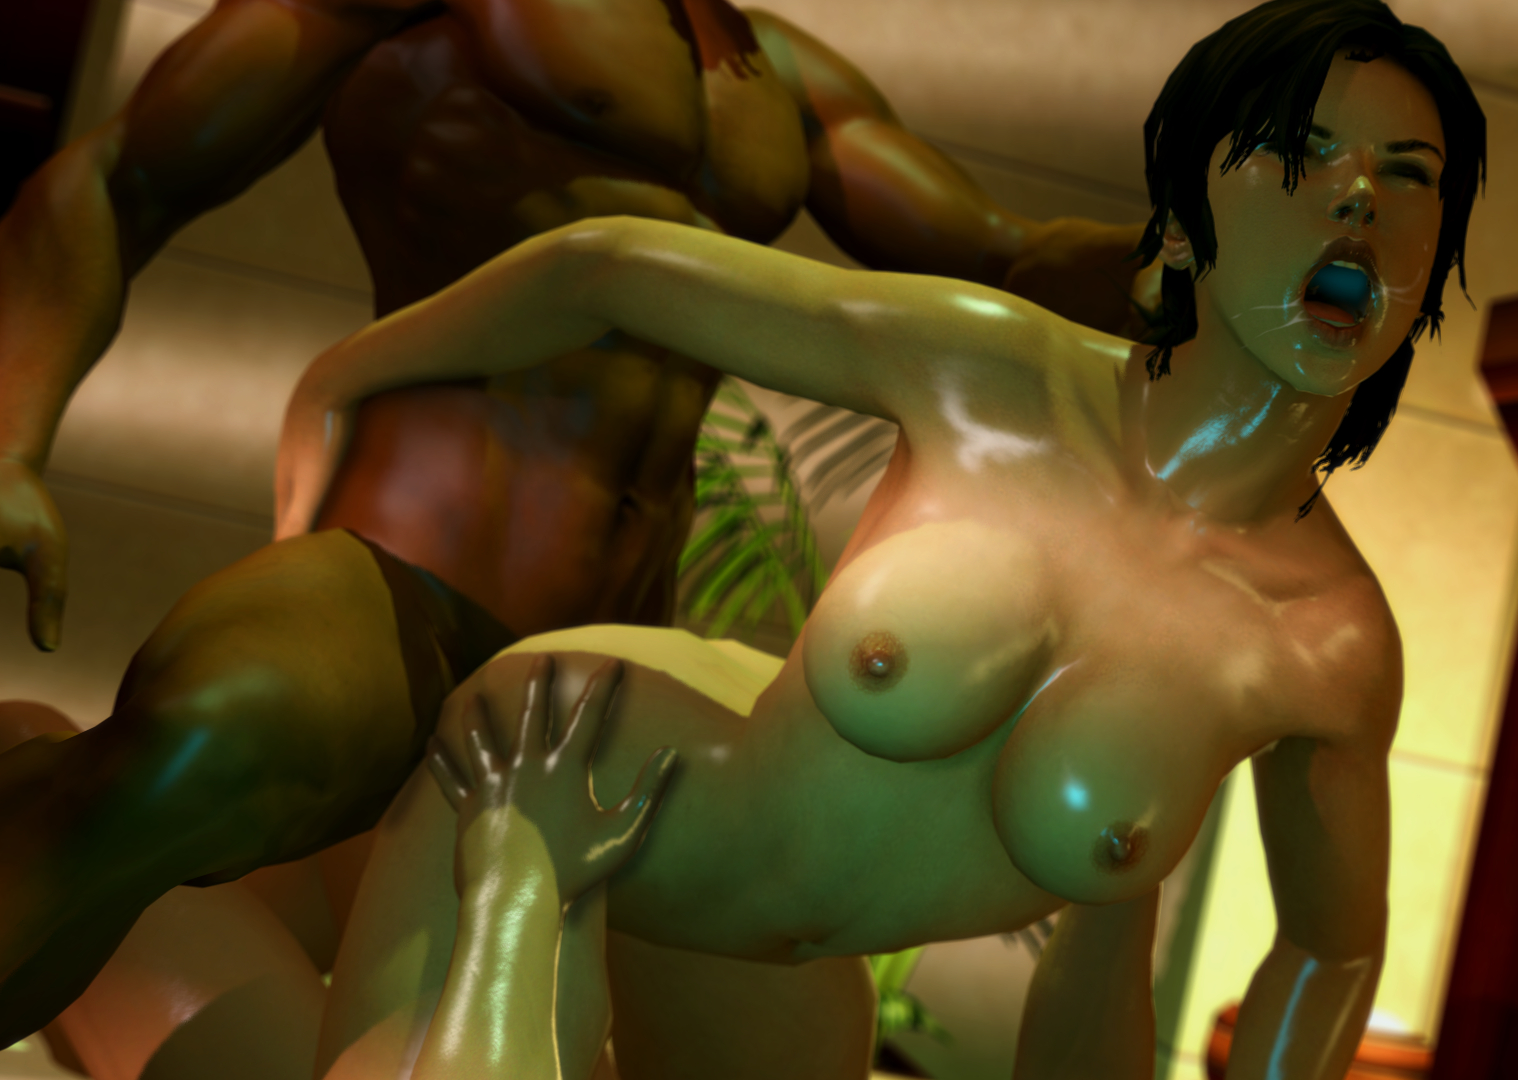 Tomb raider boobs nude animation hentia download